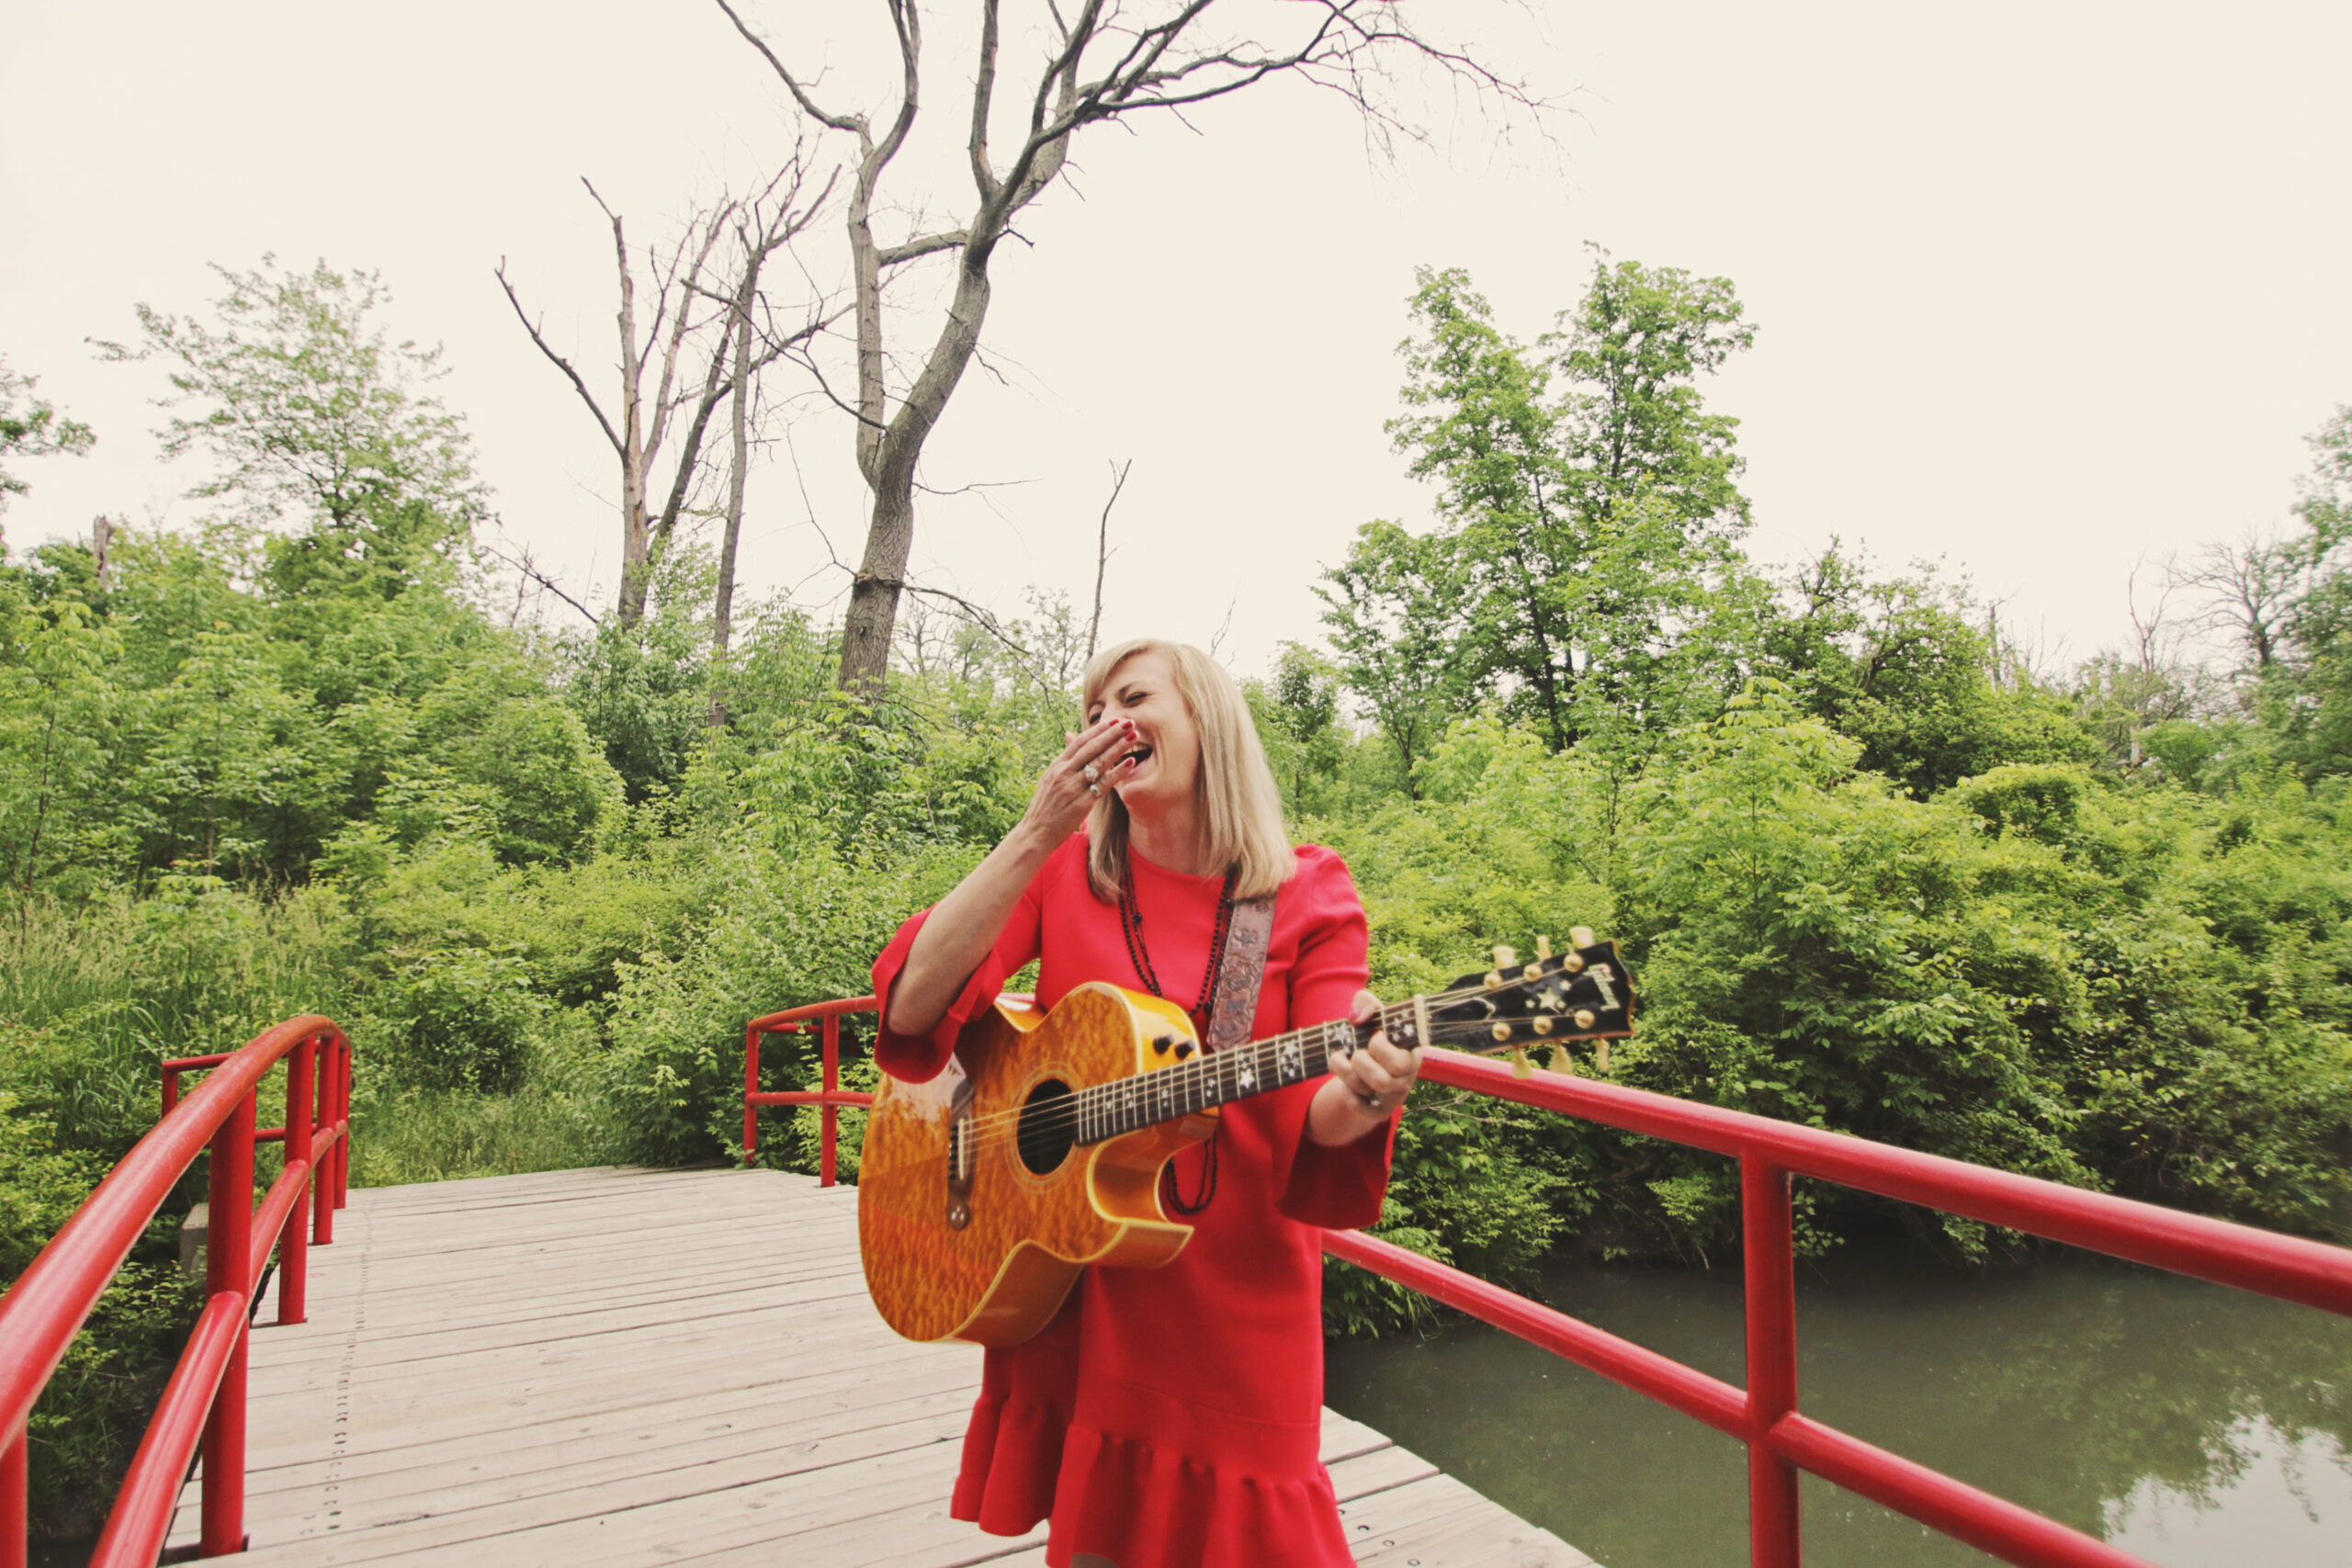 Melissa Behring Fairy Godmother of Music Belle Isle Detroit